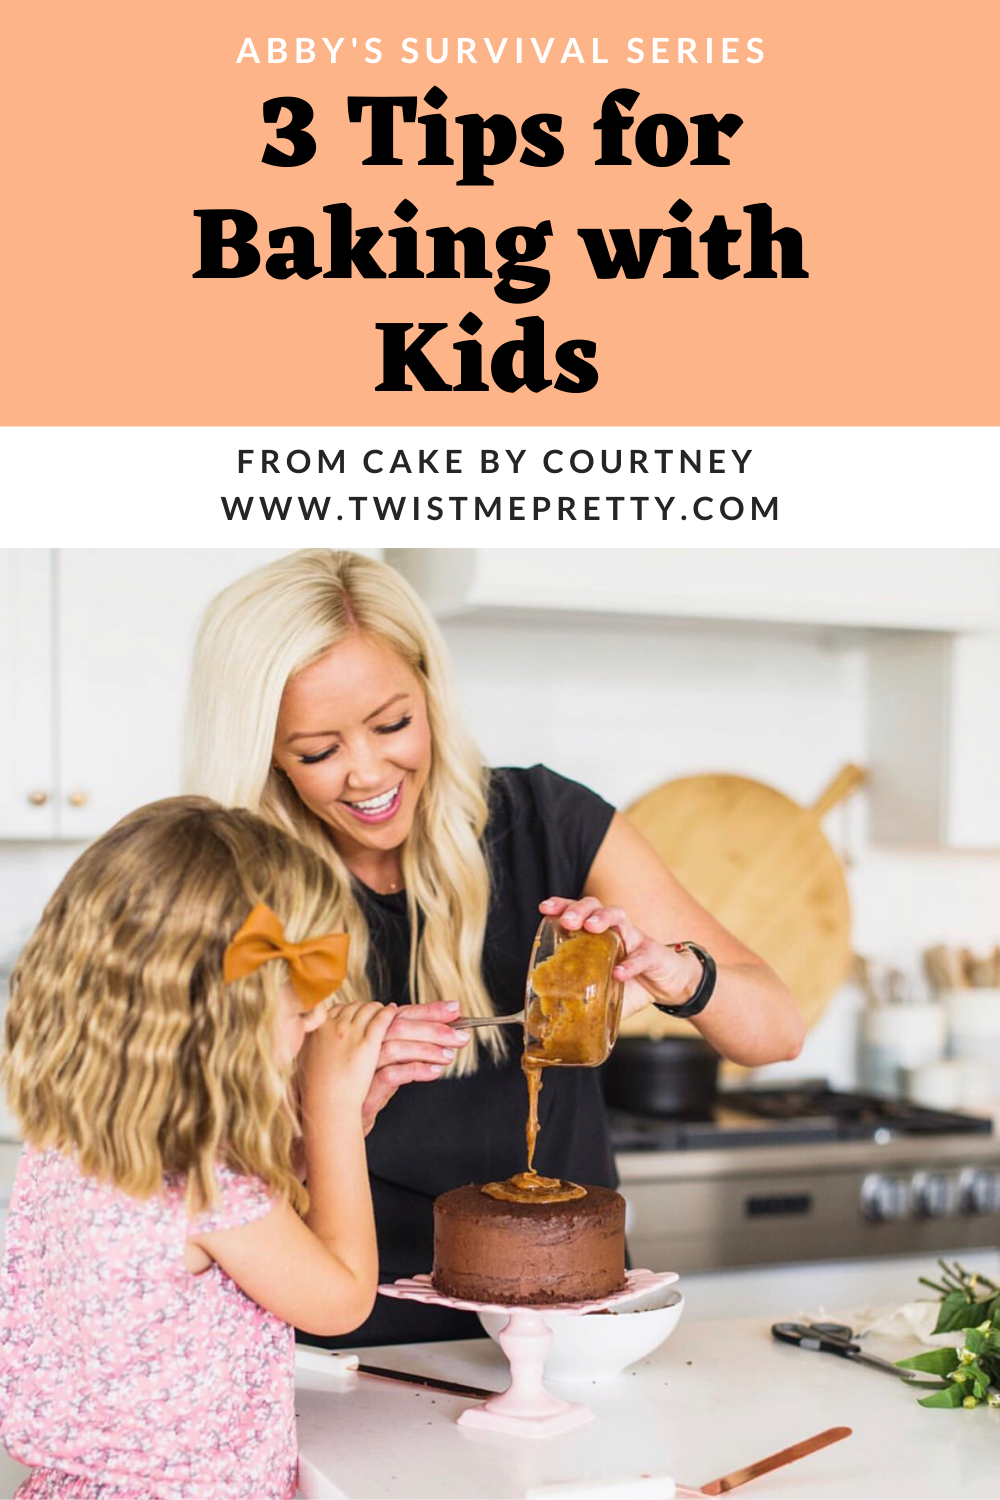 Abby's Survival Series- 3 Tips for Baking with Kids from Cake By Courtney. www.TwistMePretty.com